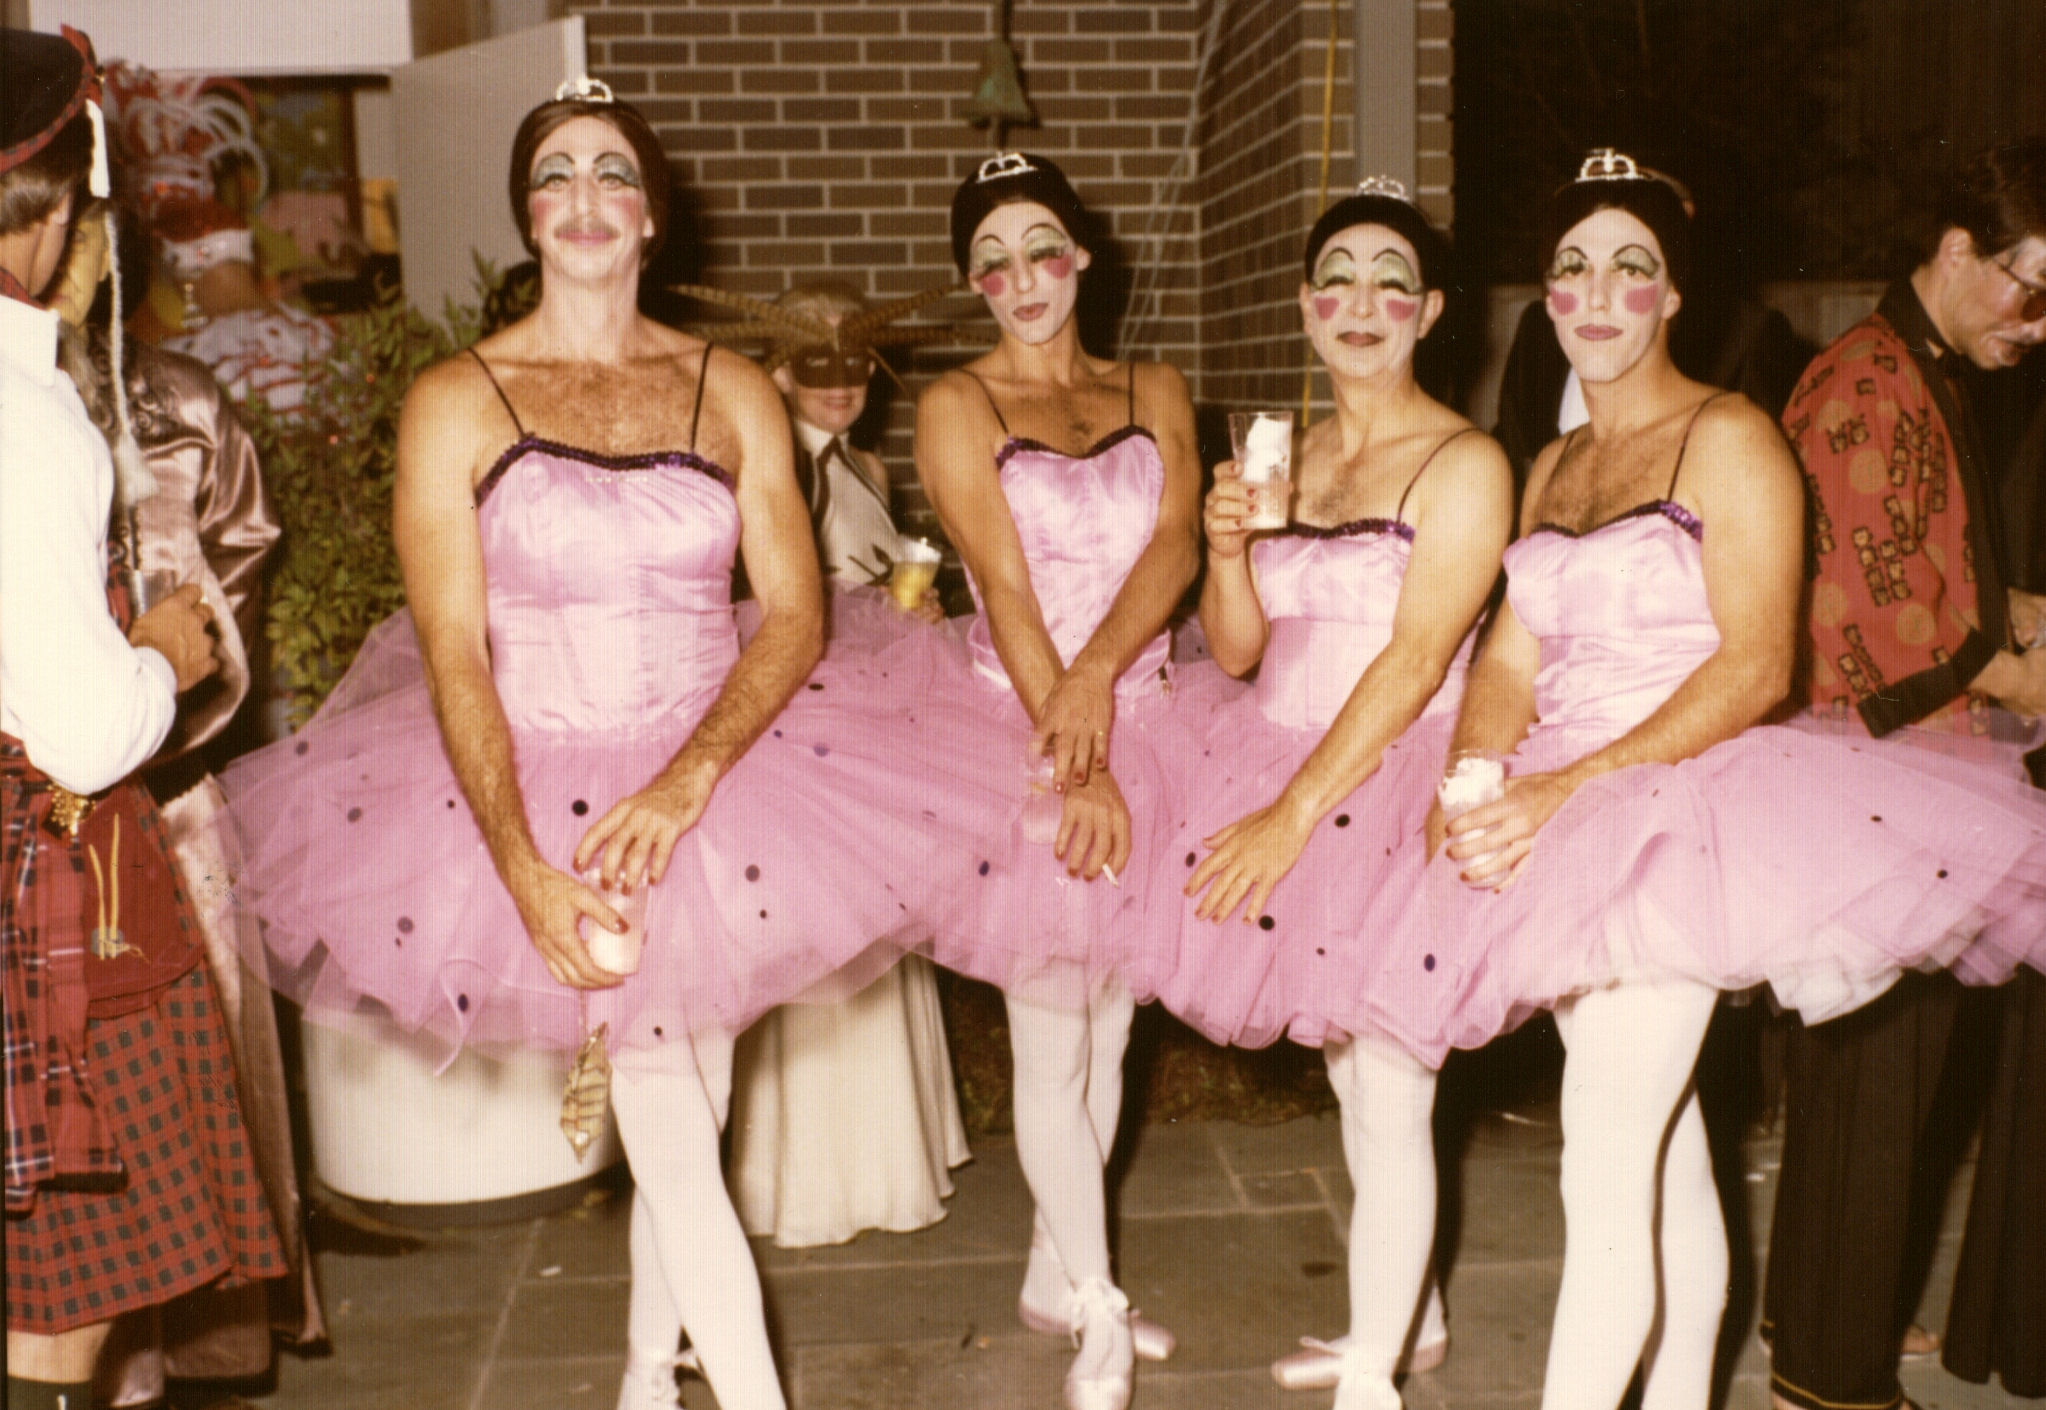 Dianas 3 - 1970's Photos 26 - Rushing Ballet.jpg